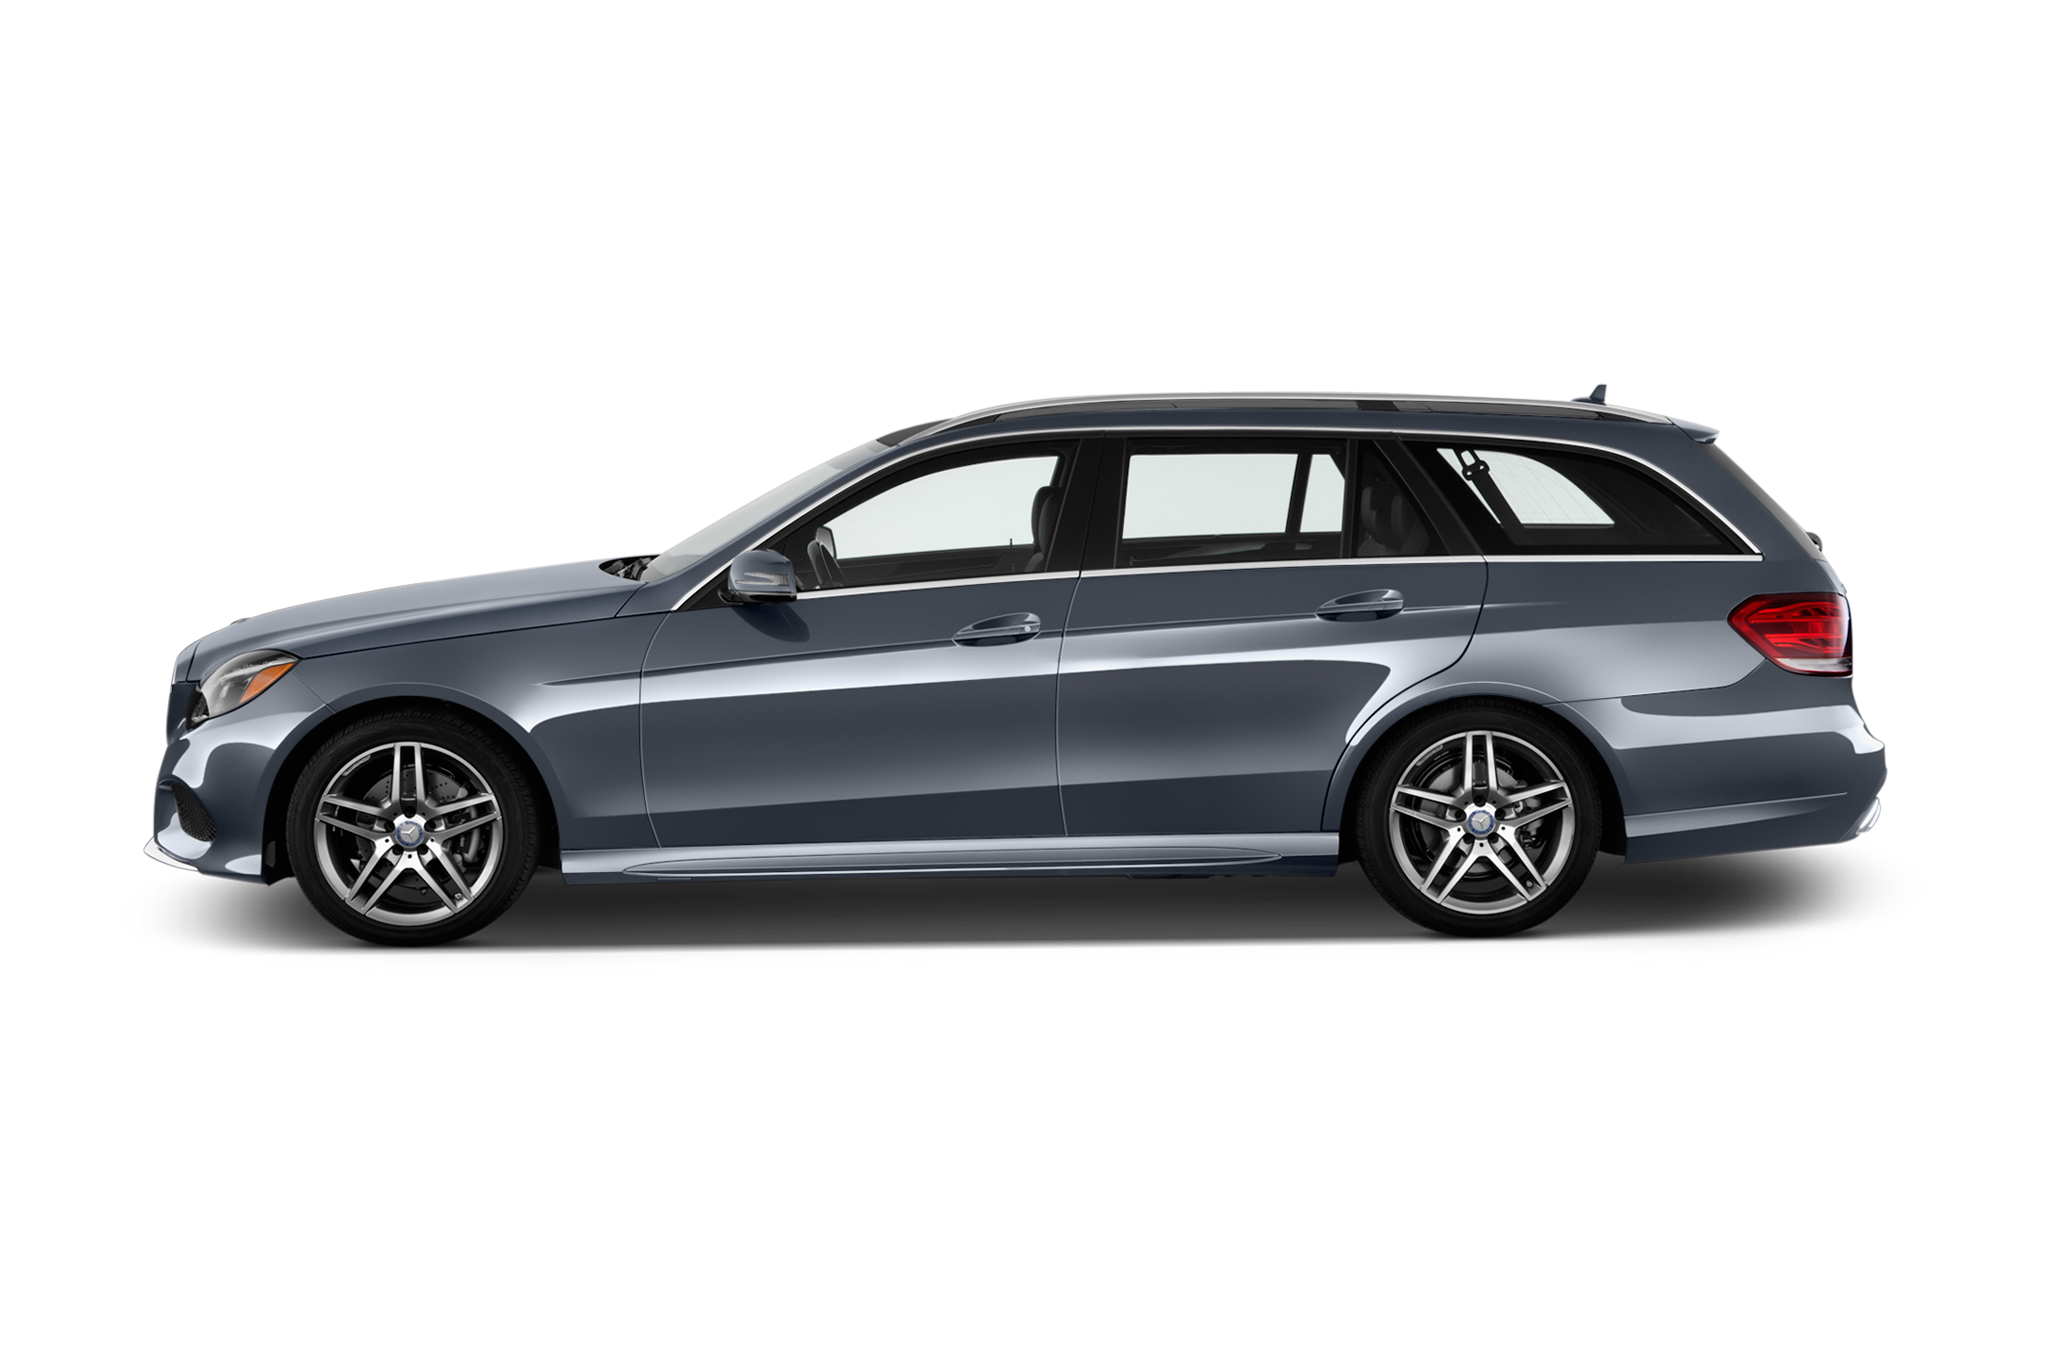 2019 Mercedes Benz E Class 4matic likewise 2625 2007 mercedes Benz e Class wagon e350 4matic fq oem 2 2048 additionally 270957 Cls Wheels E350 moreover Mercedes Benz E Class Black Bison Edition By Wald Gets New Rims as well 2017 Mercedes Amg E63 Wagon Caught Testing Nurburgring. on mercedes benz e350 wagon